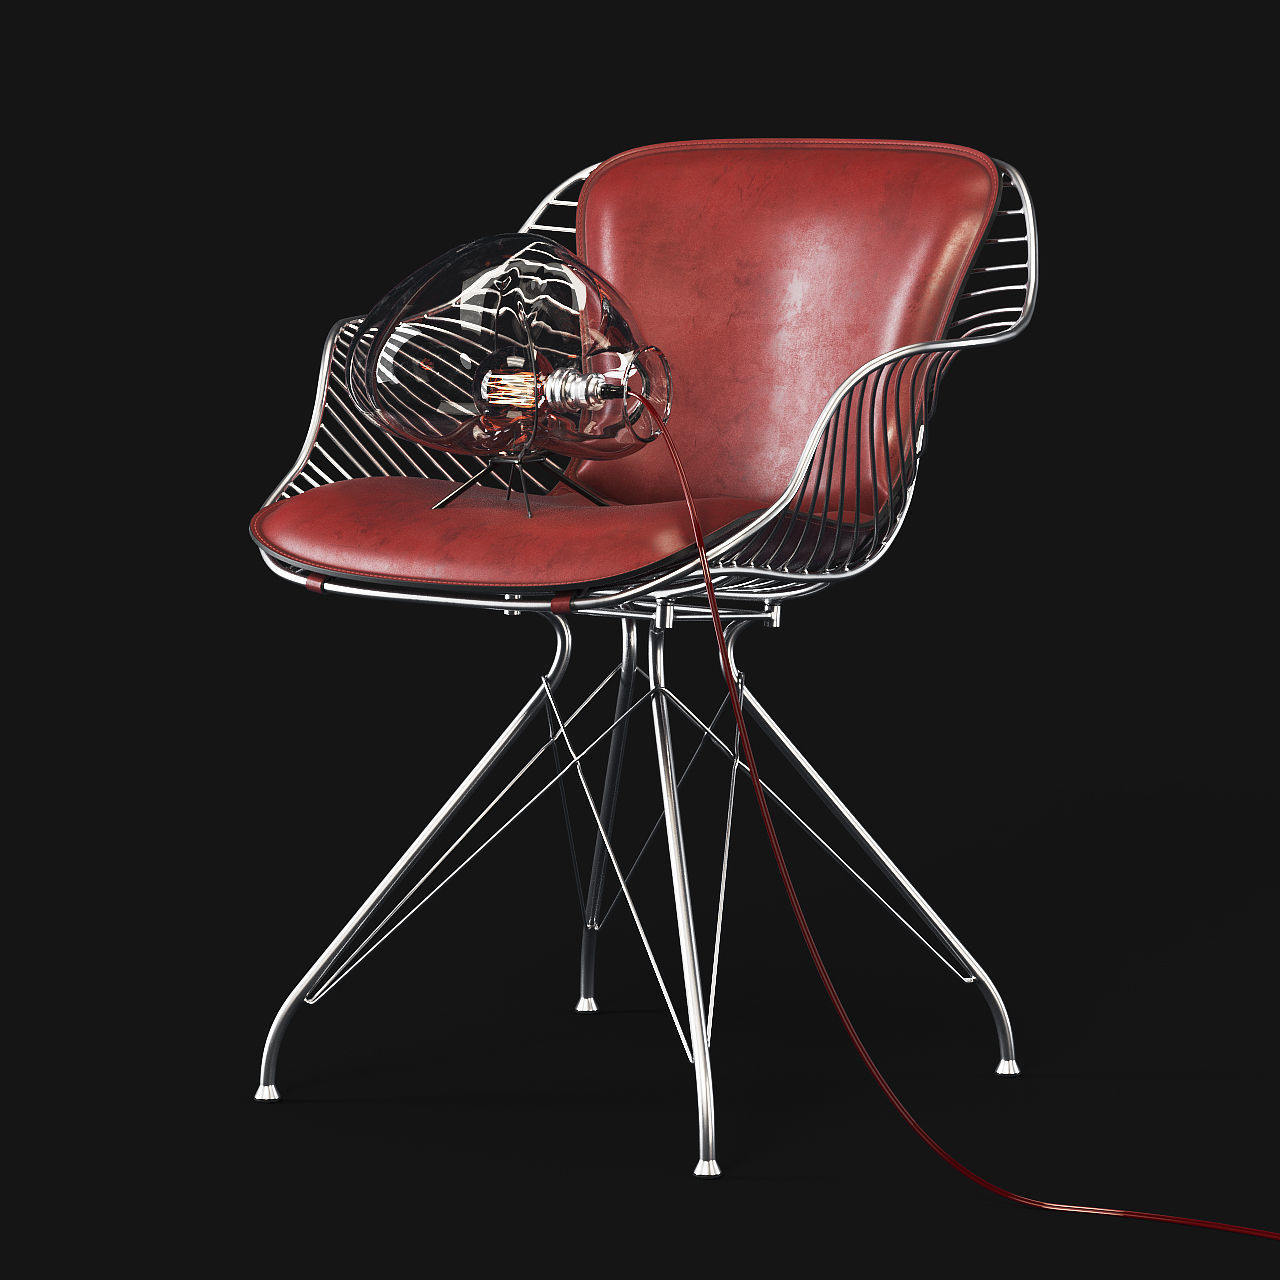 The Wire Dining Chair was the first piece in the Wire Collection